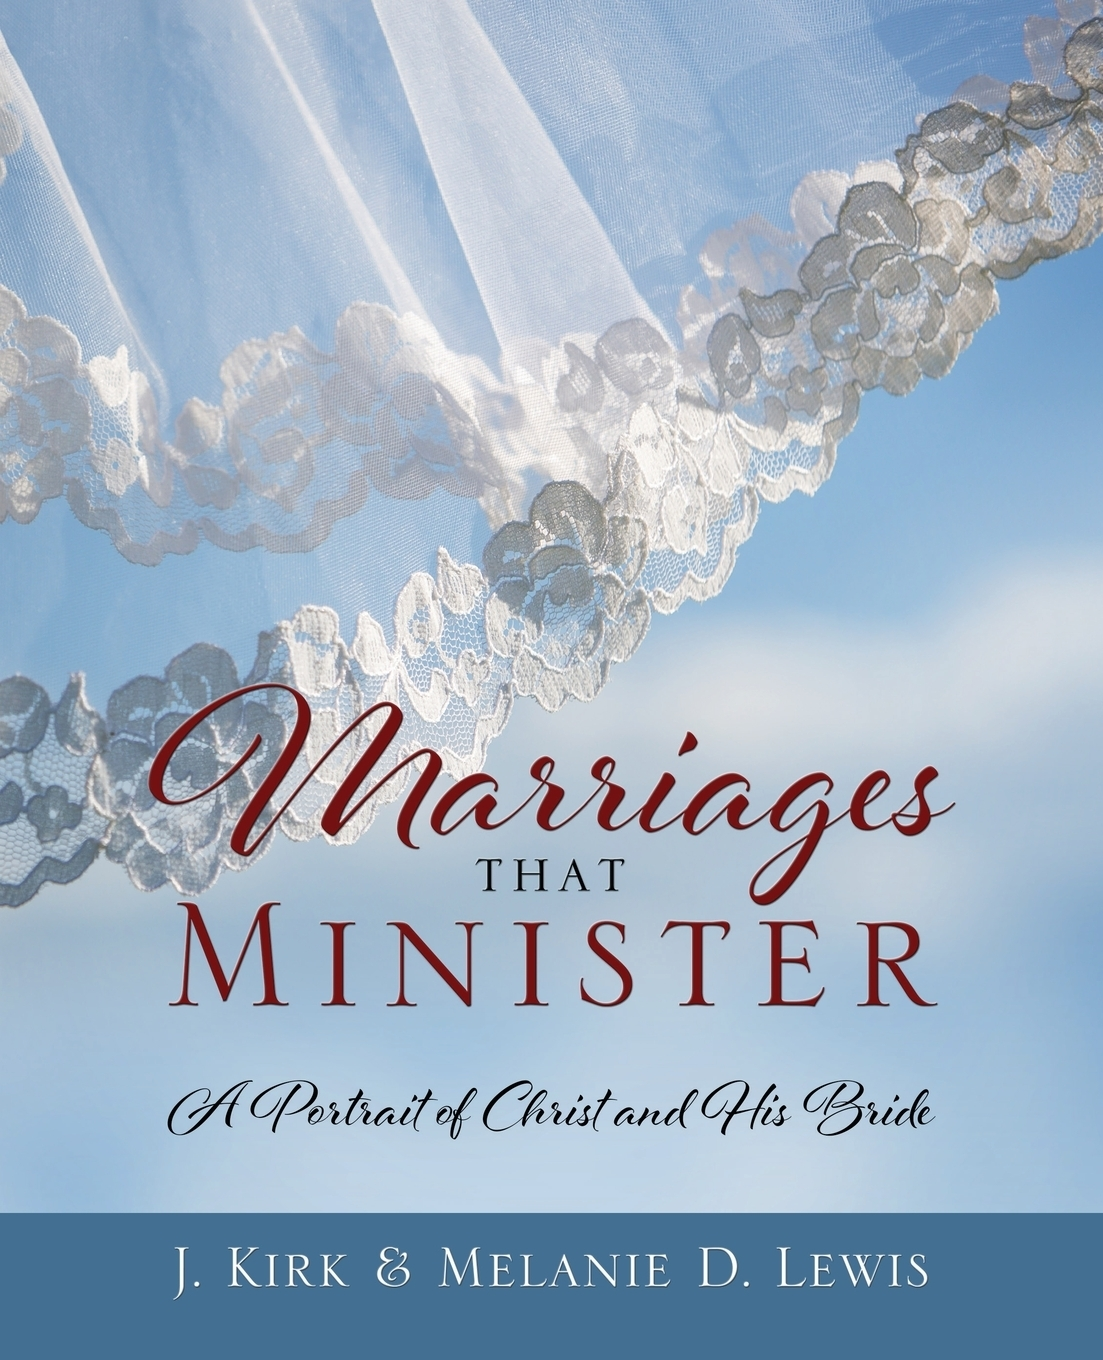 Kirk J. Lewis, Melanie  D. Lewis. Marriages that Minister. A Portrait of Christ and His Bride